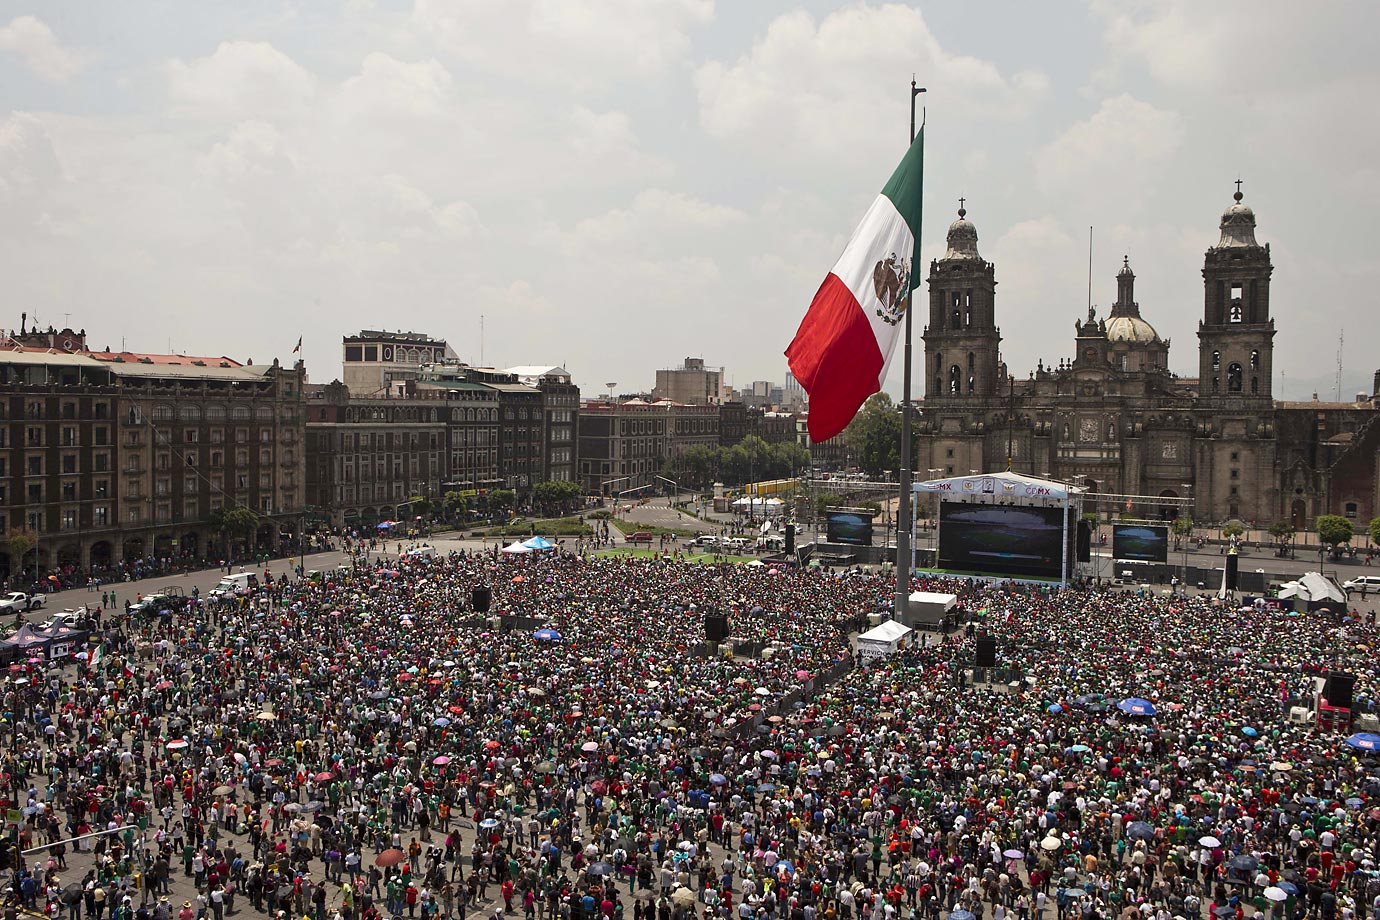 Mexico soccer fans in Mexico City's main square, the Zocalo.